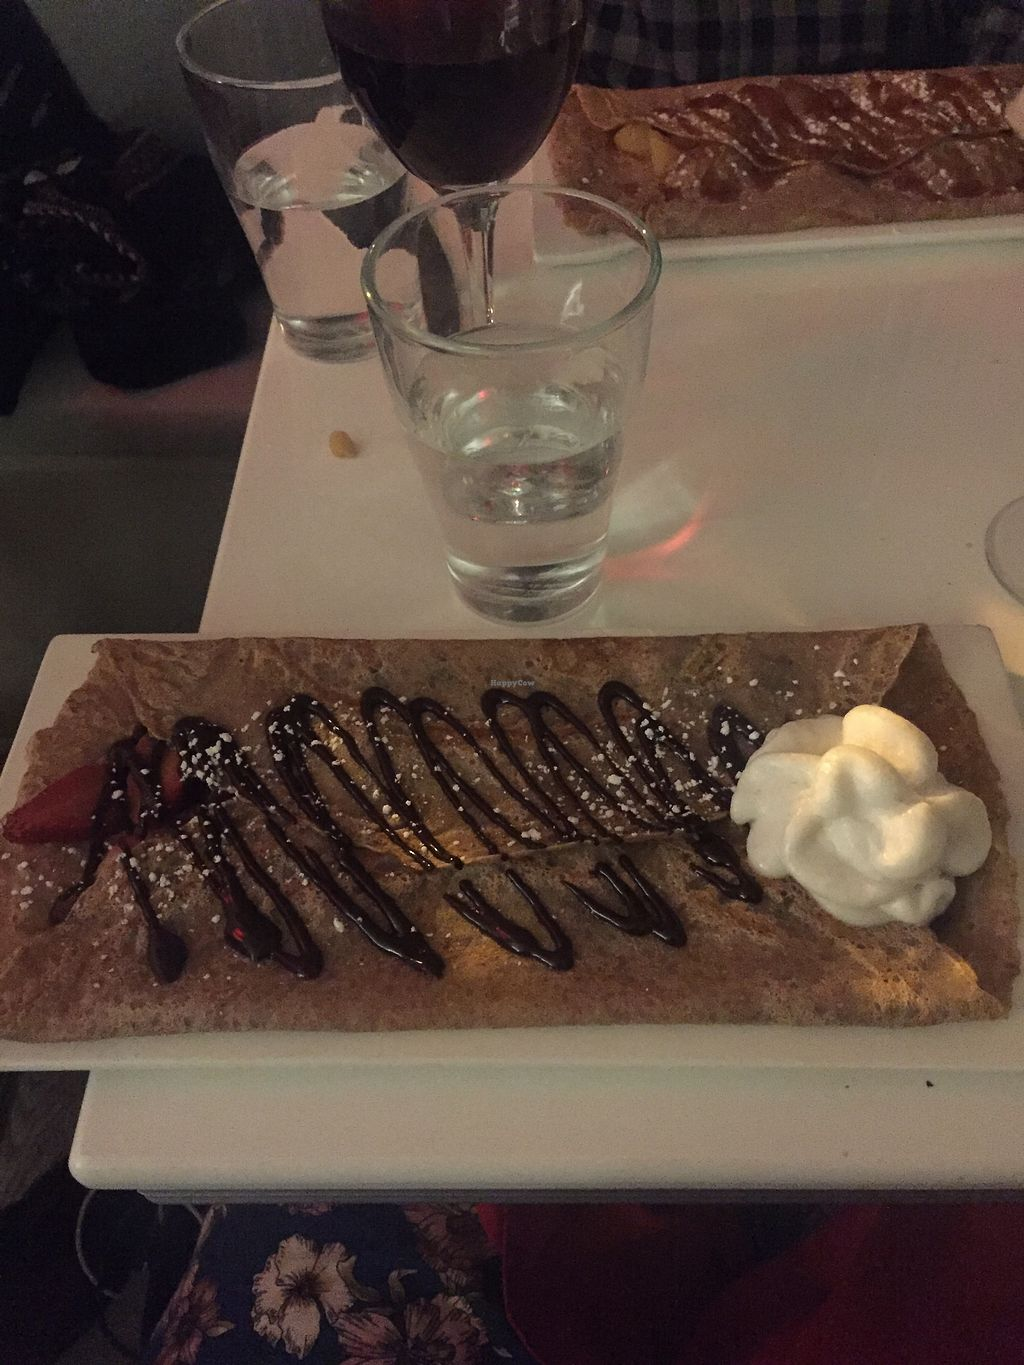 """Photo of Delice & Sarrasin  by <a href=""""/members/profile/KaitlynnGill"""">KaitlynnGill</a> <br/>Chocolate strawberry crepe! <br/> October 1, 2017  - <a href='/contact/abuse/image/79712/310595'>Report</a>"""